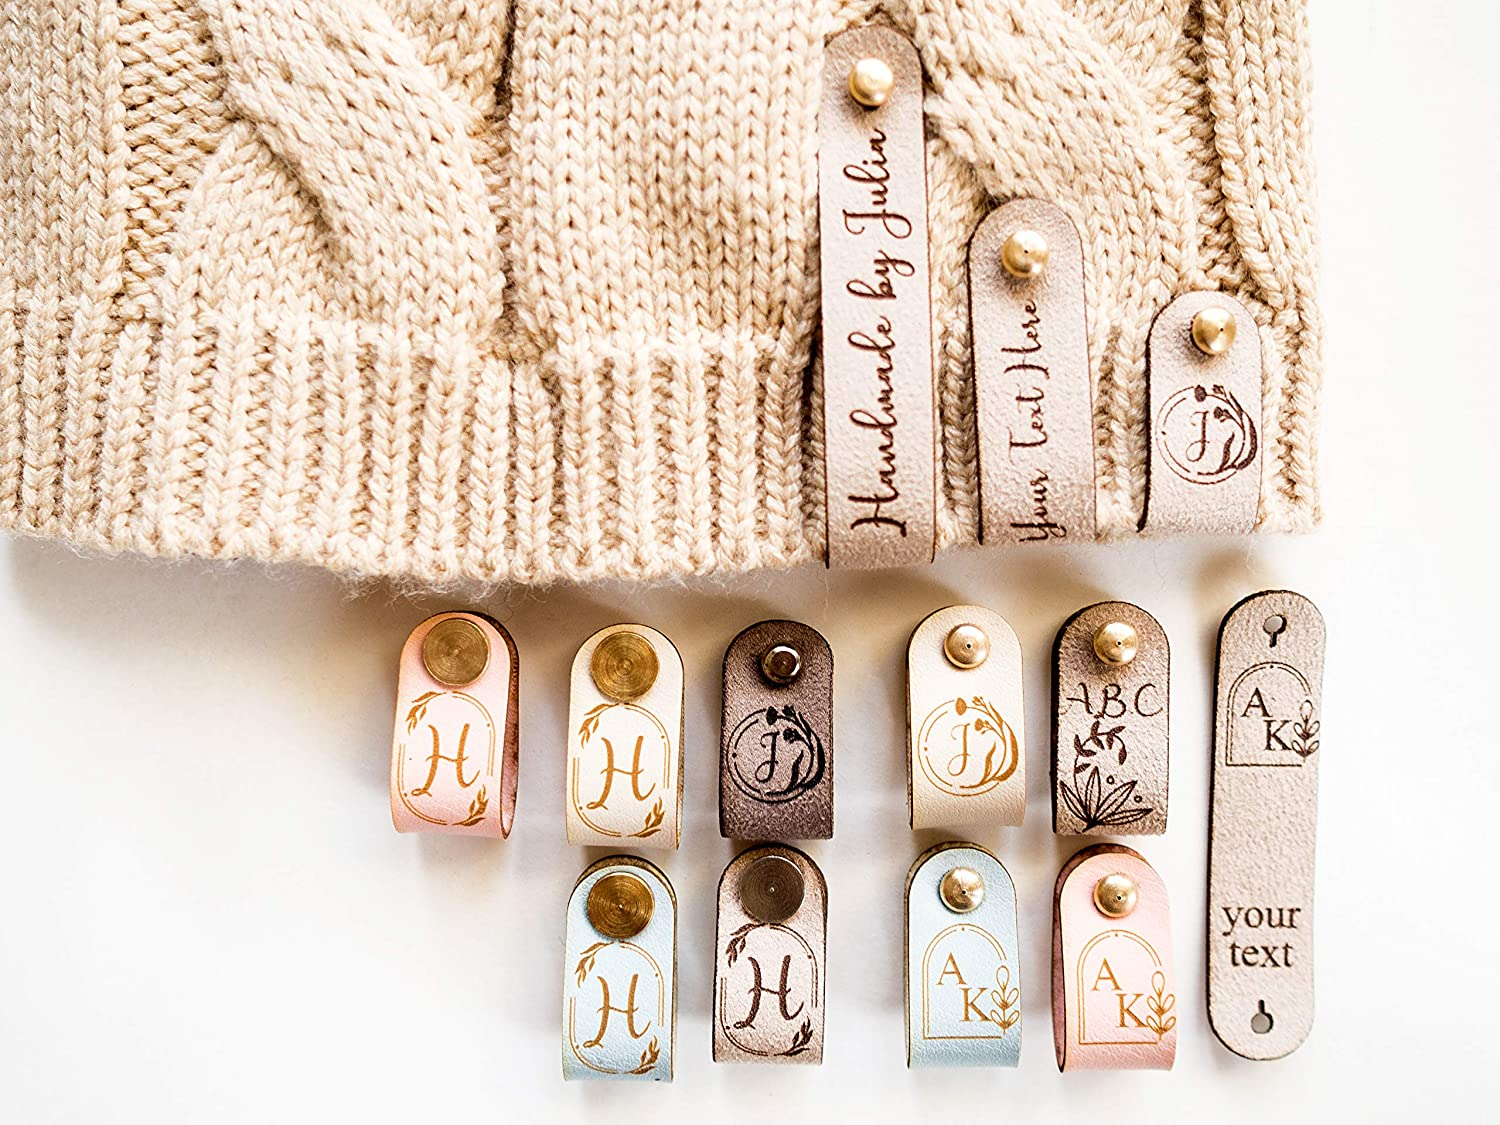 Personalized Faux Leather Labels for with HandKnit Items Topics on TV Rivets Fashion